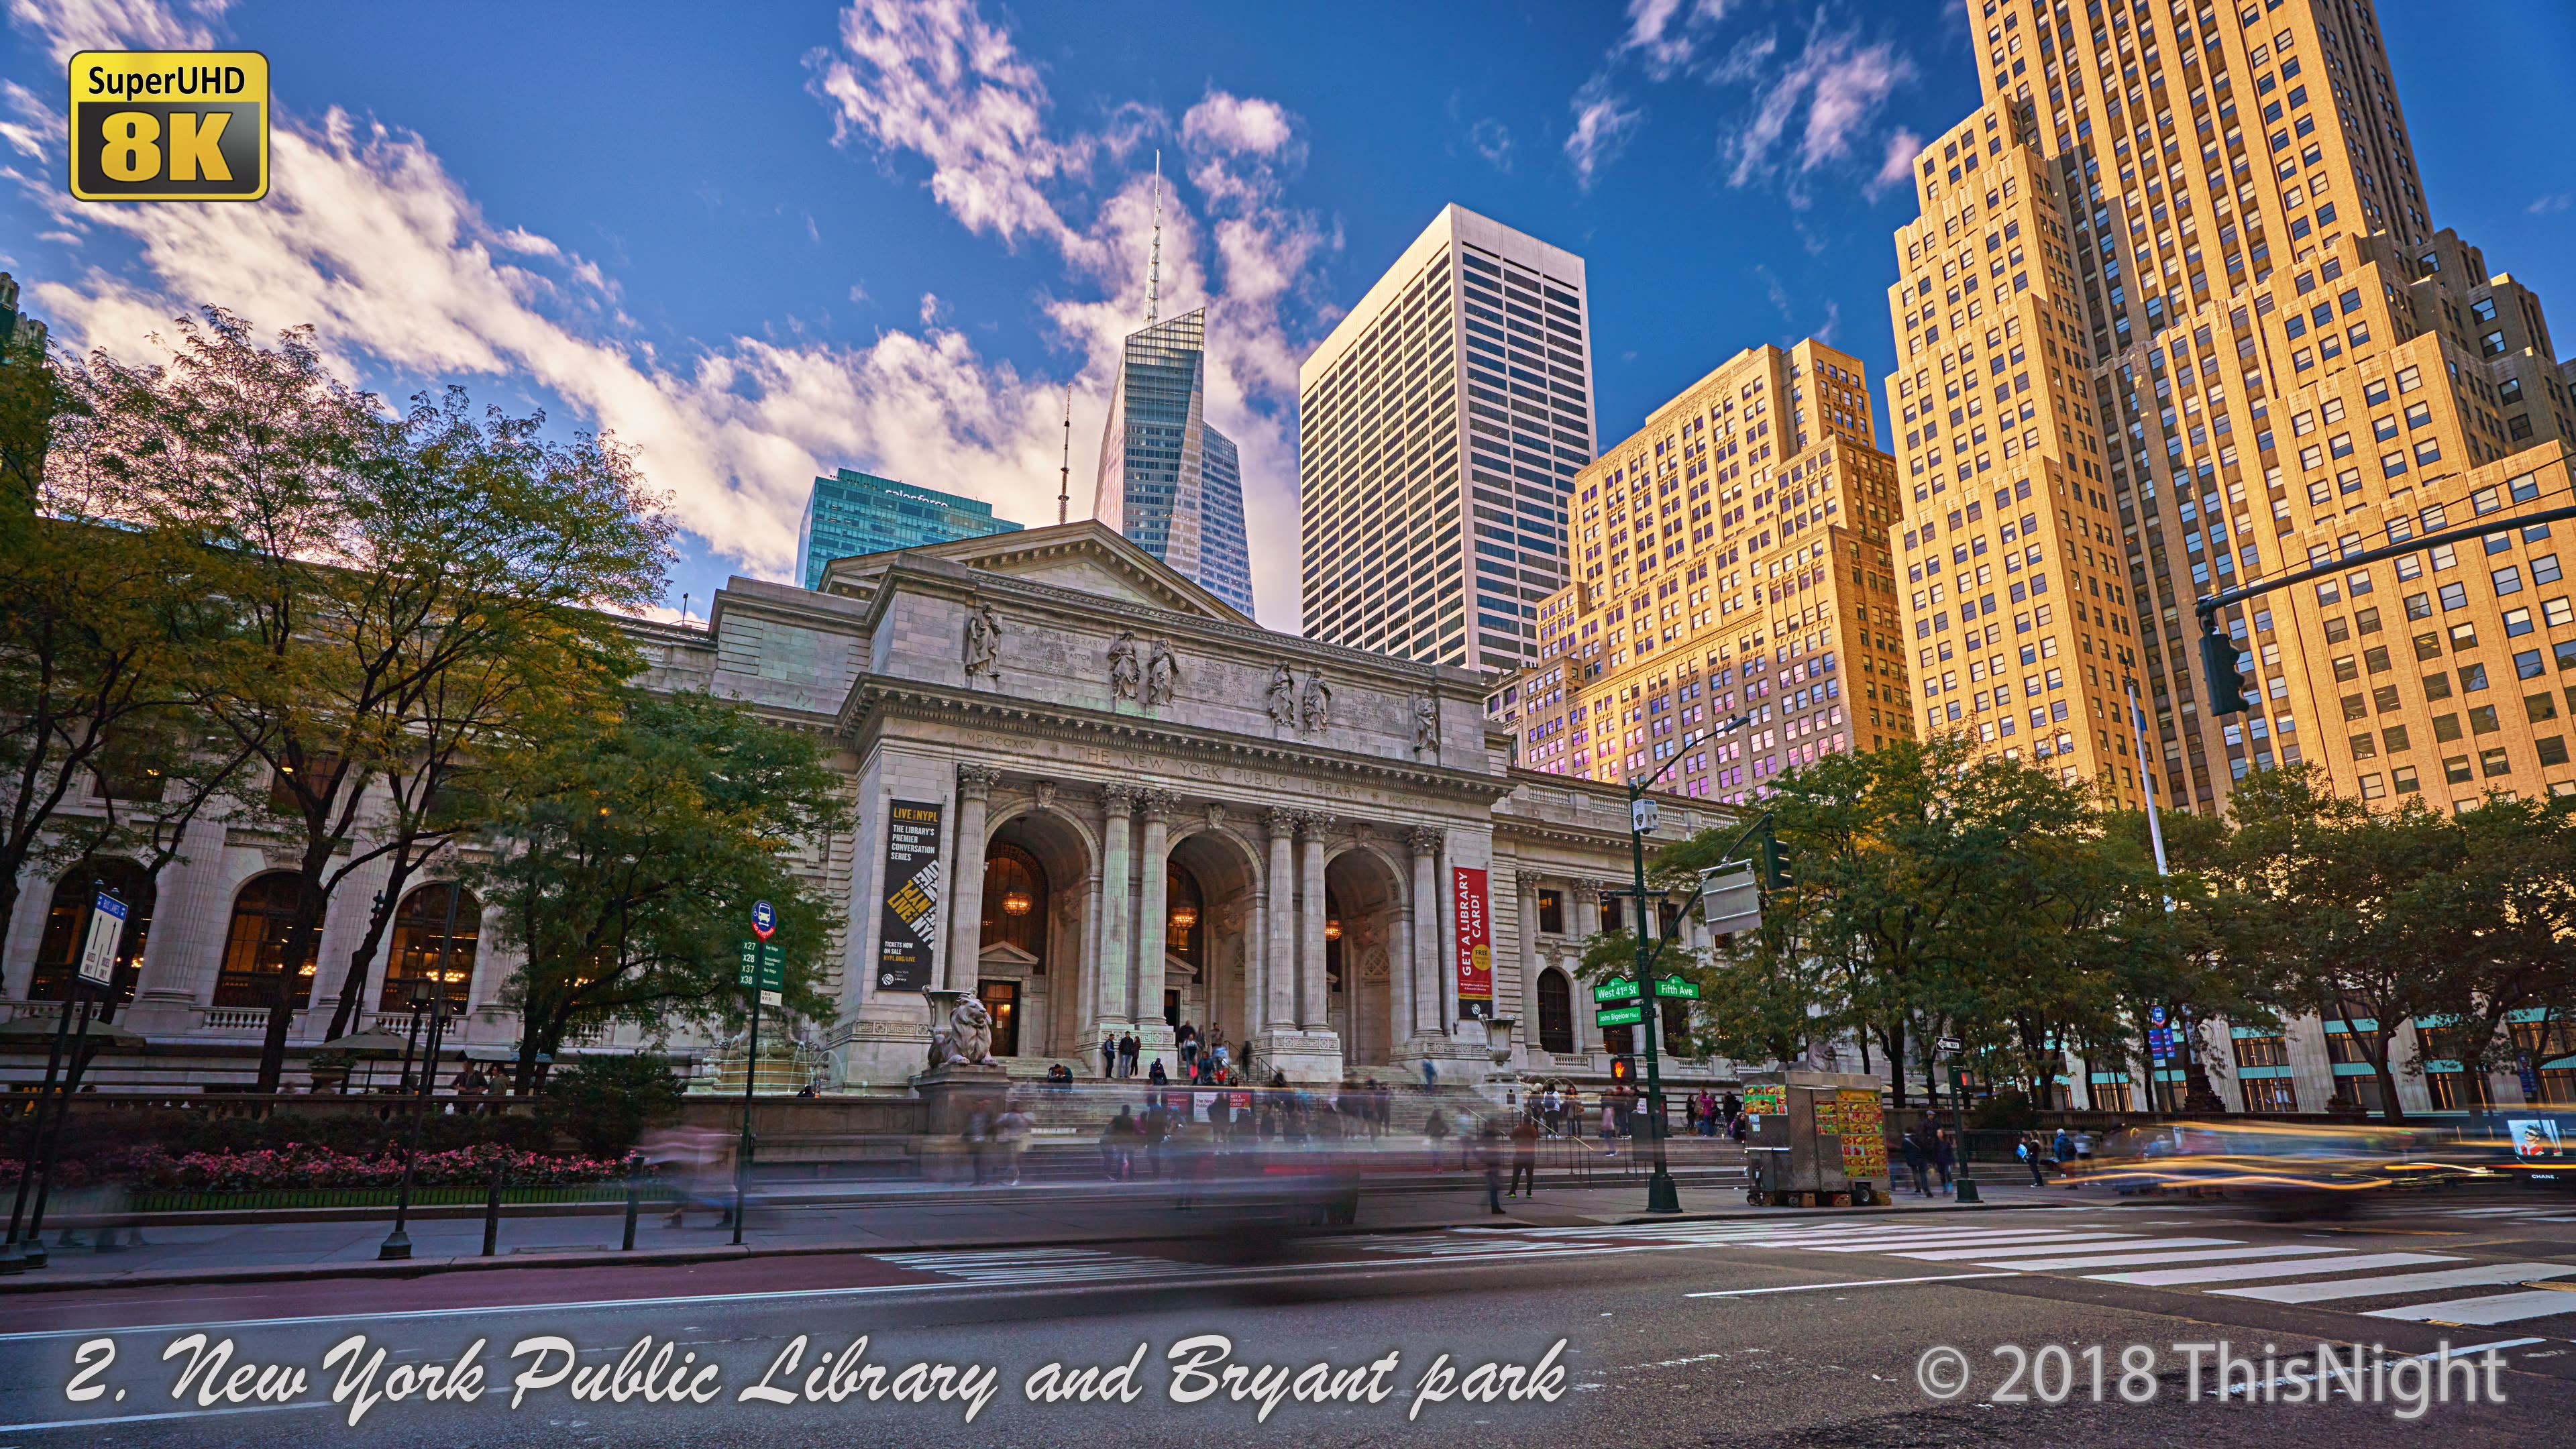 New York  Public Library.Bryant Park